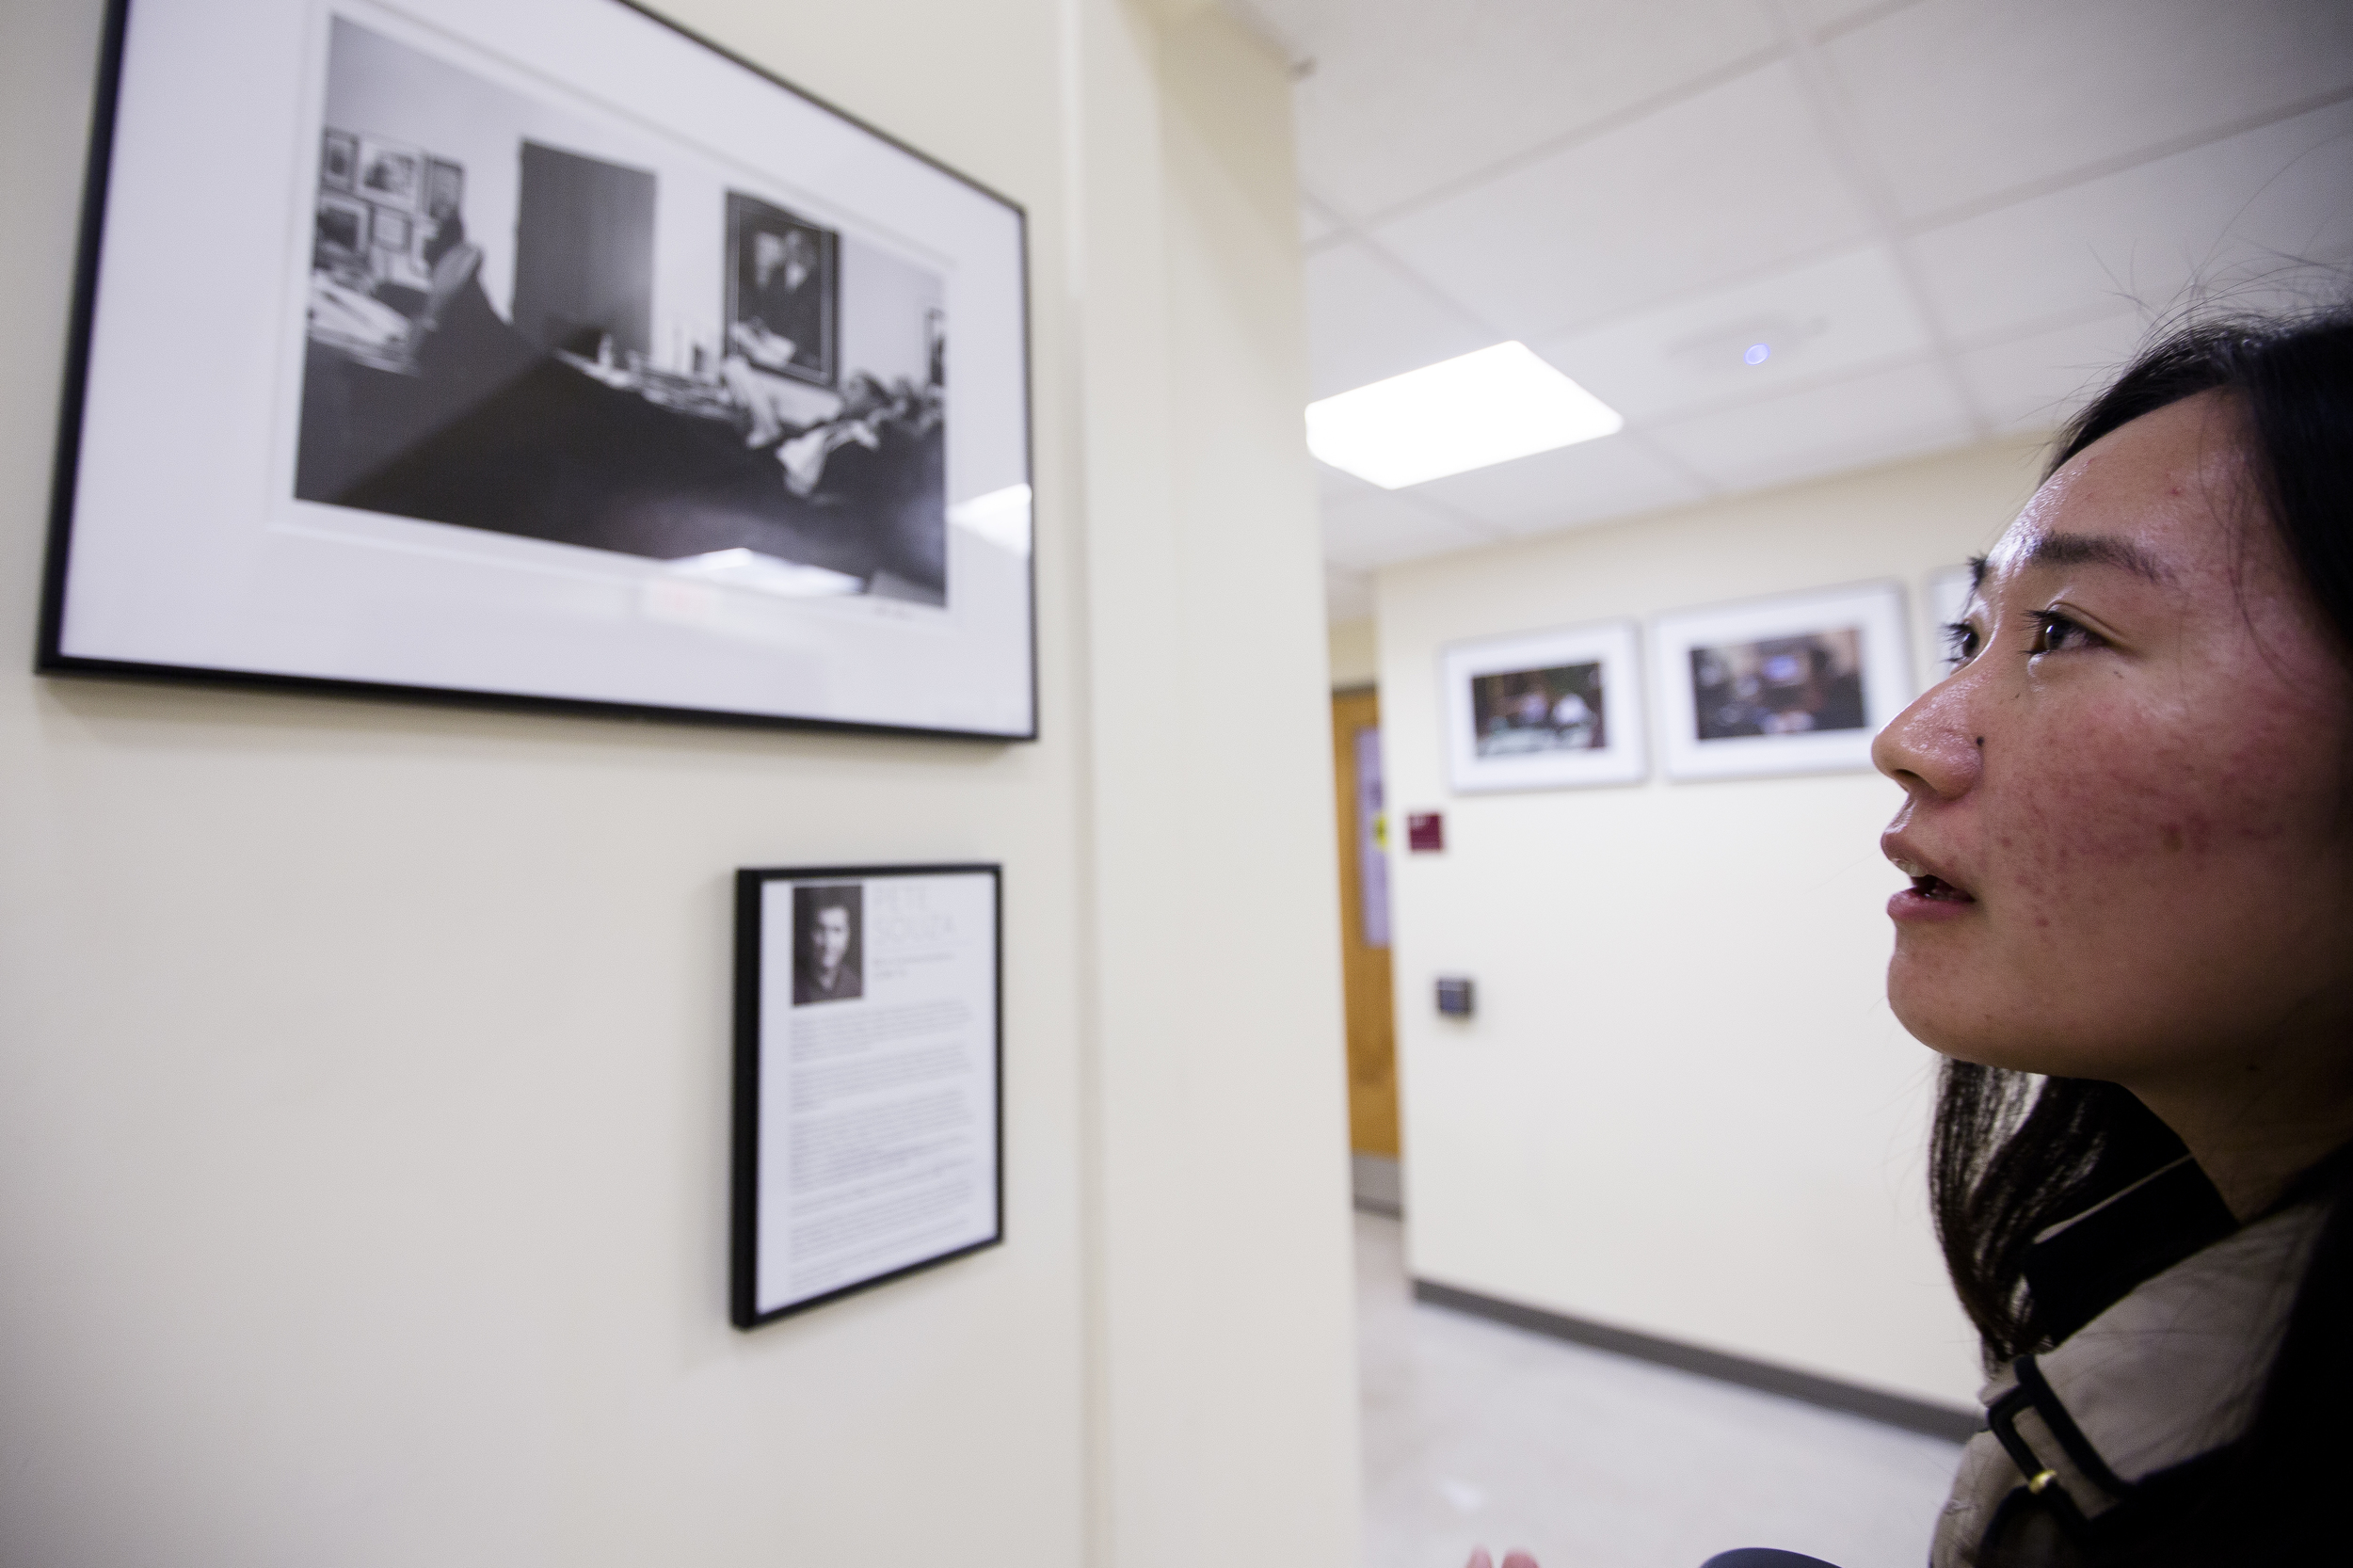 Yanshu Lee, a Boston Univeristy graduate student viewing photos of Obama released by the White House. Photo by Ann Wang